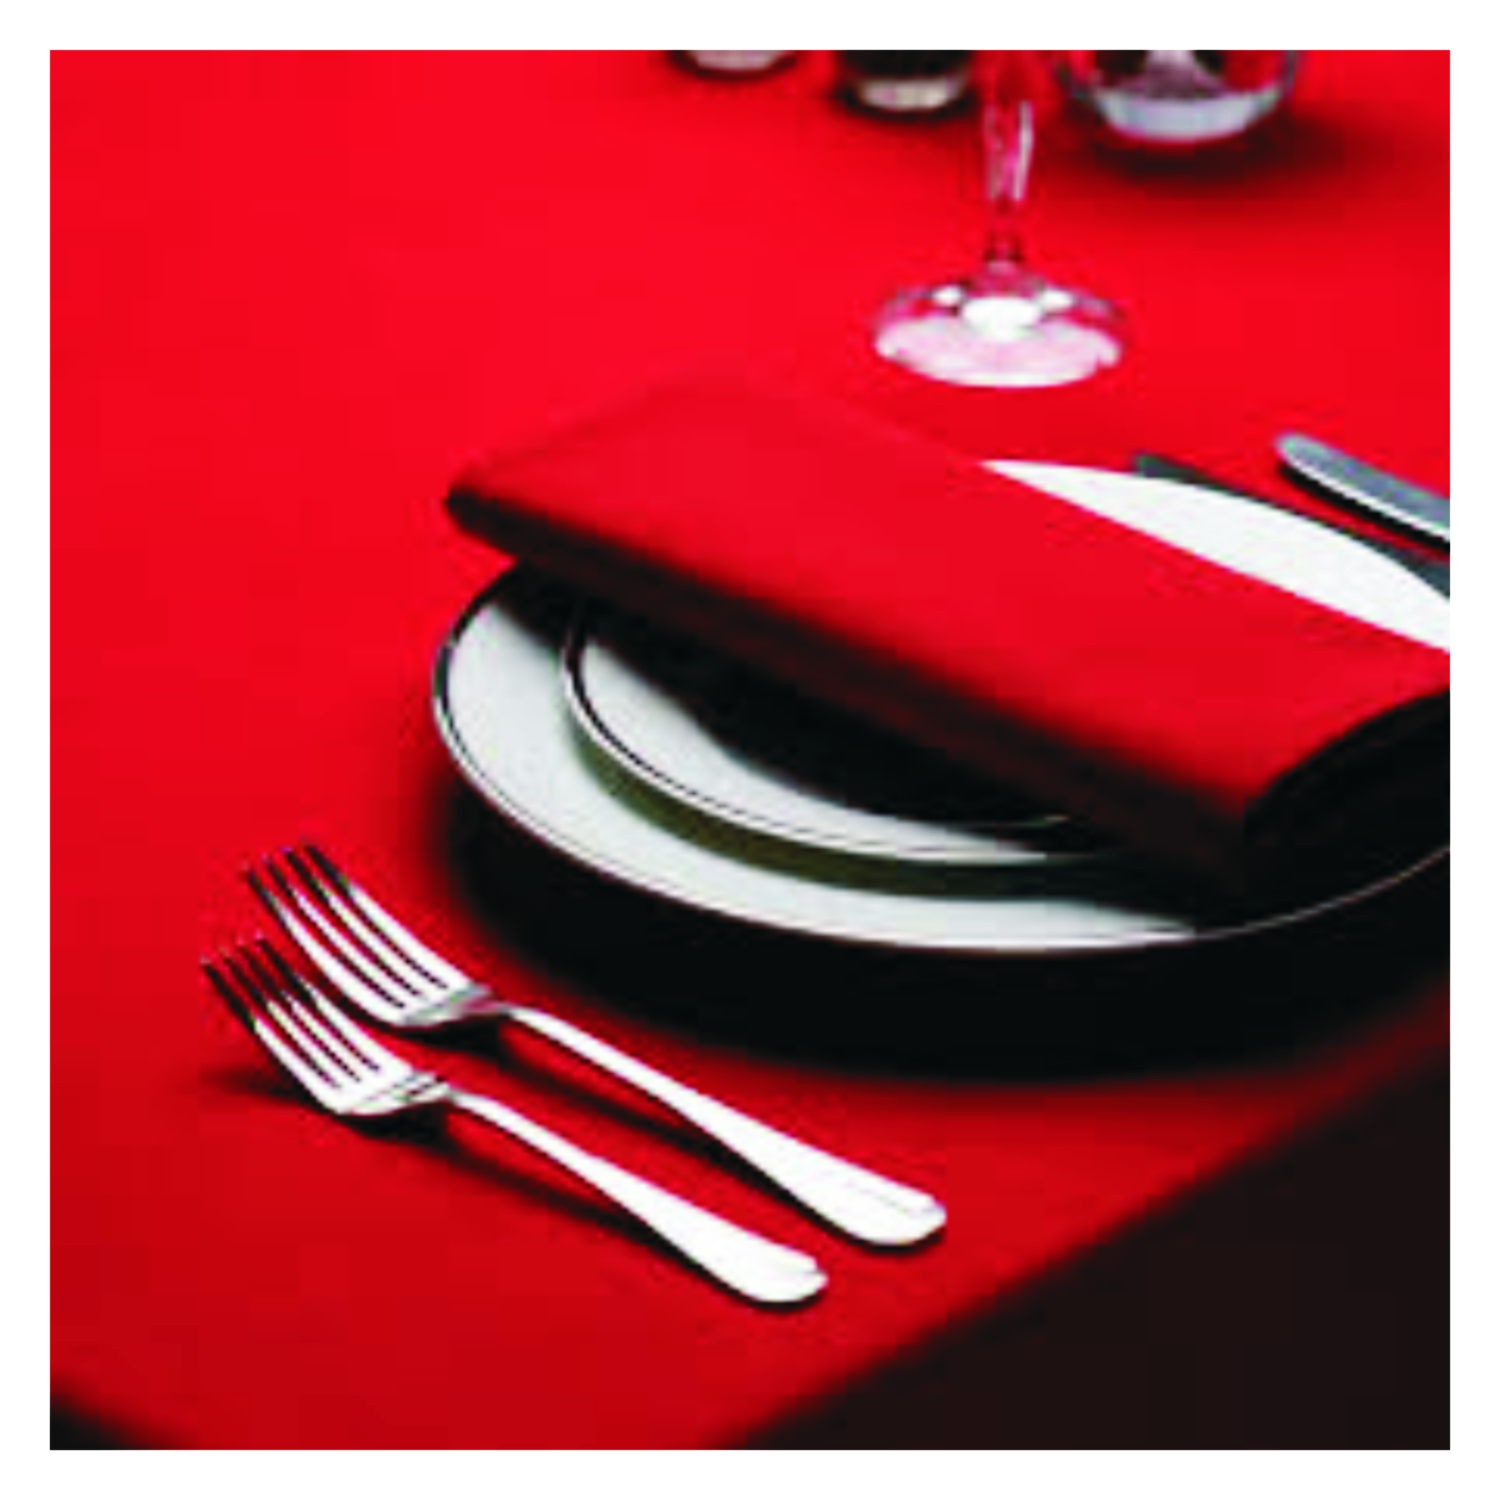 Table Napkins with Branded Logos and Text.